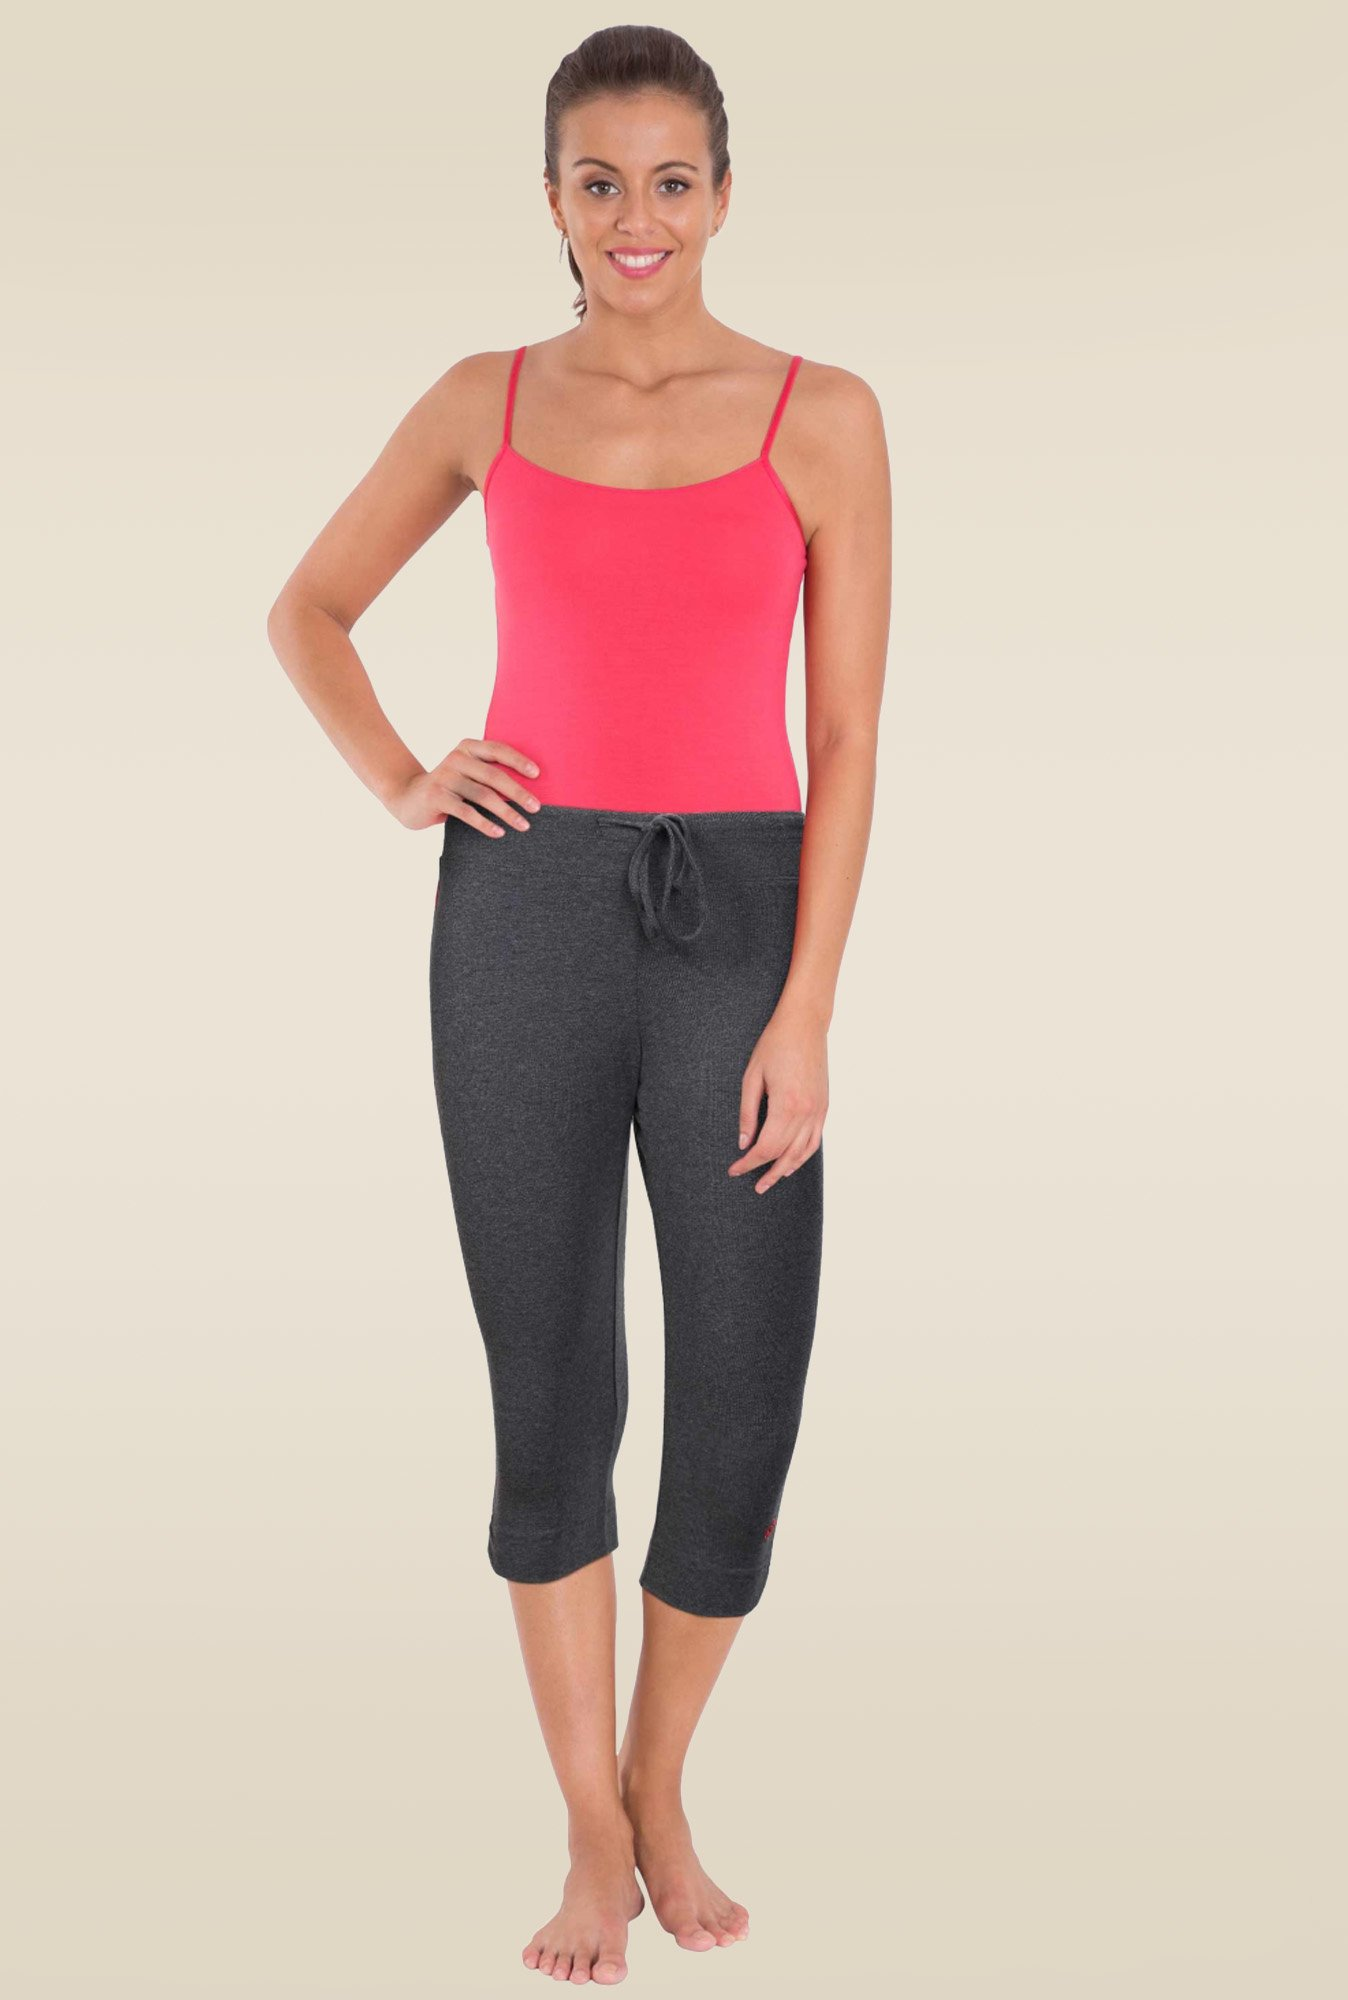 9f9ac5a410 Buy Jockey Charcoal Melange & Ruby Knit Capri - 1390 for Women Online @  Tata CLiQ